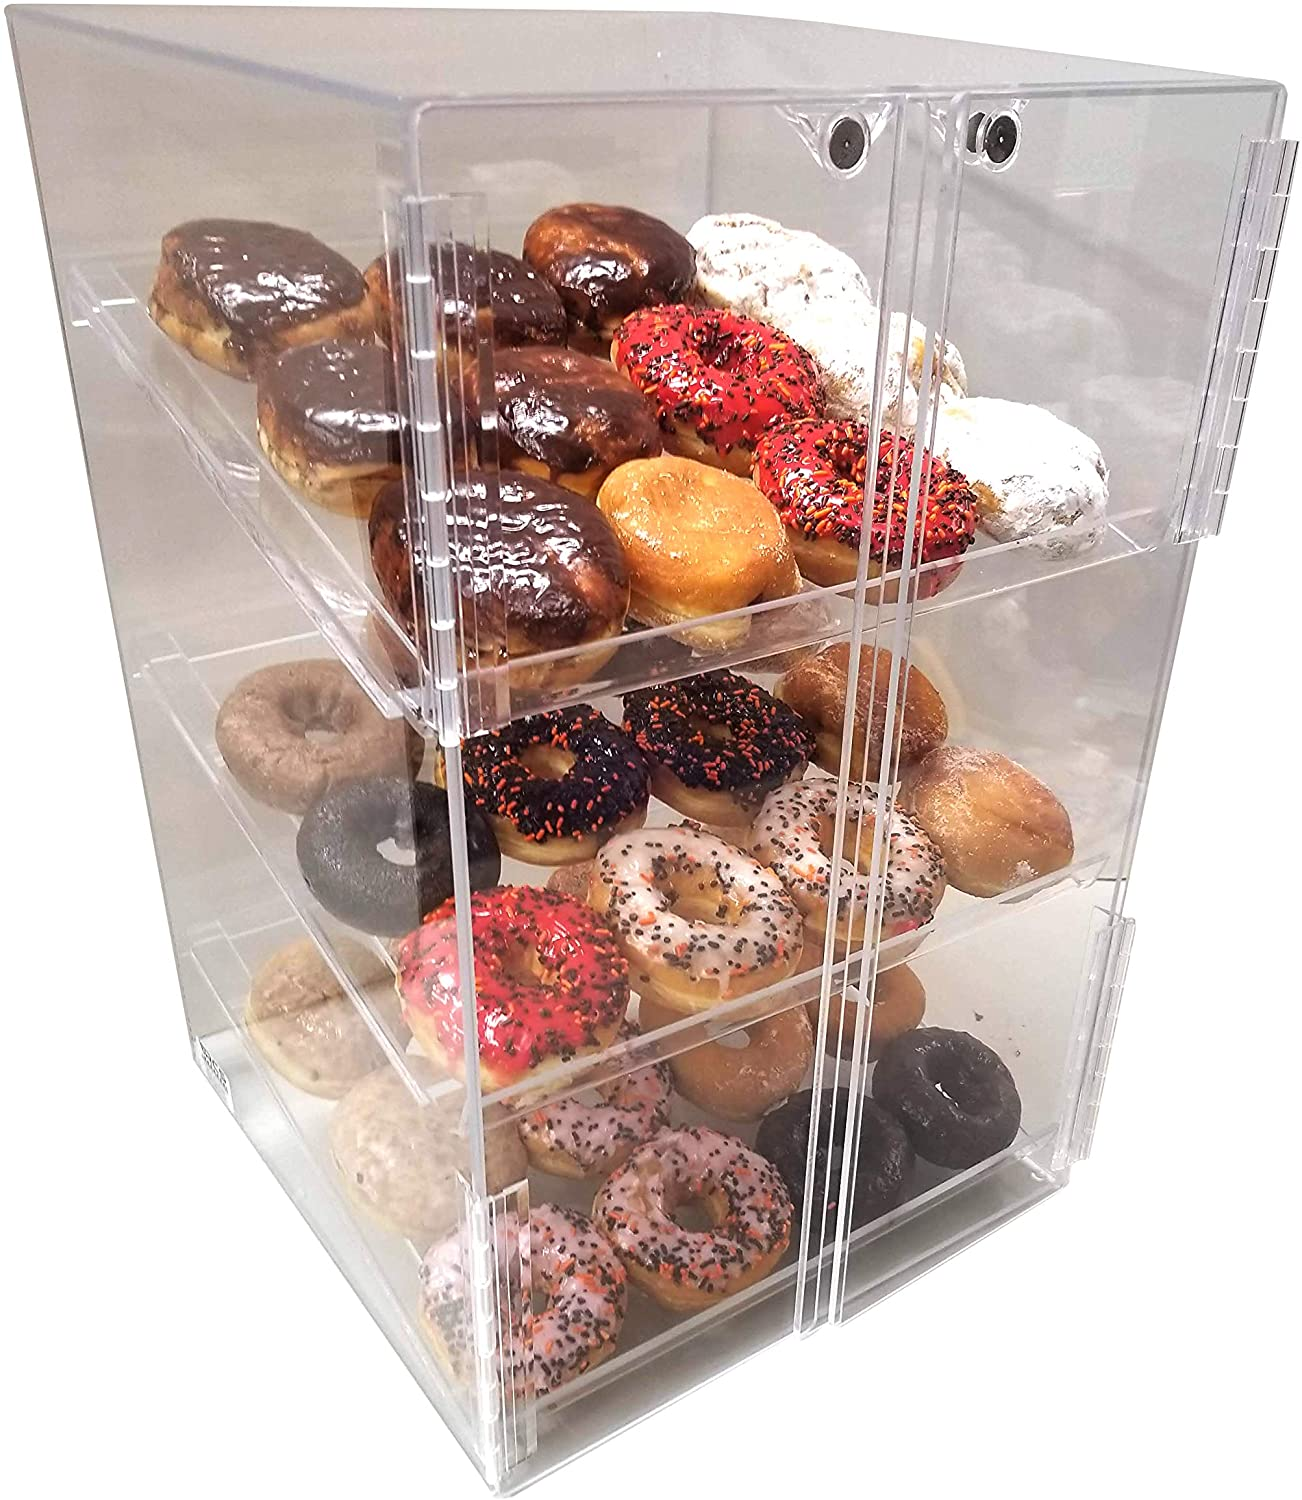 Self Serve Pastry Or Donut Display Case 3 Trays For Deli Bakery Convenience Stores Display It And Keeps Fresh Commercial Display Products Kitchen Dining